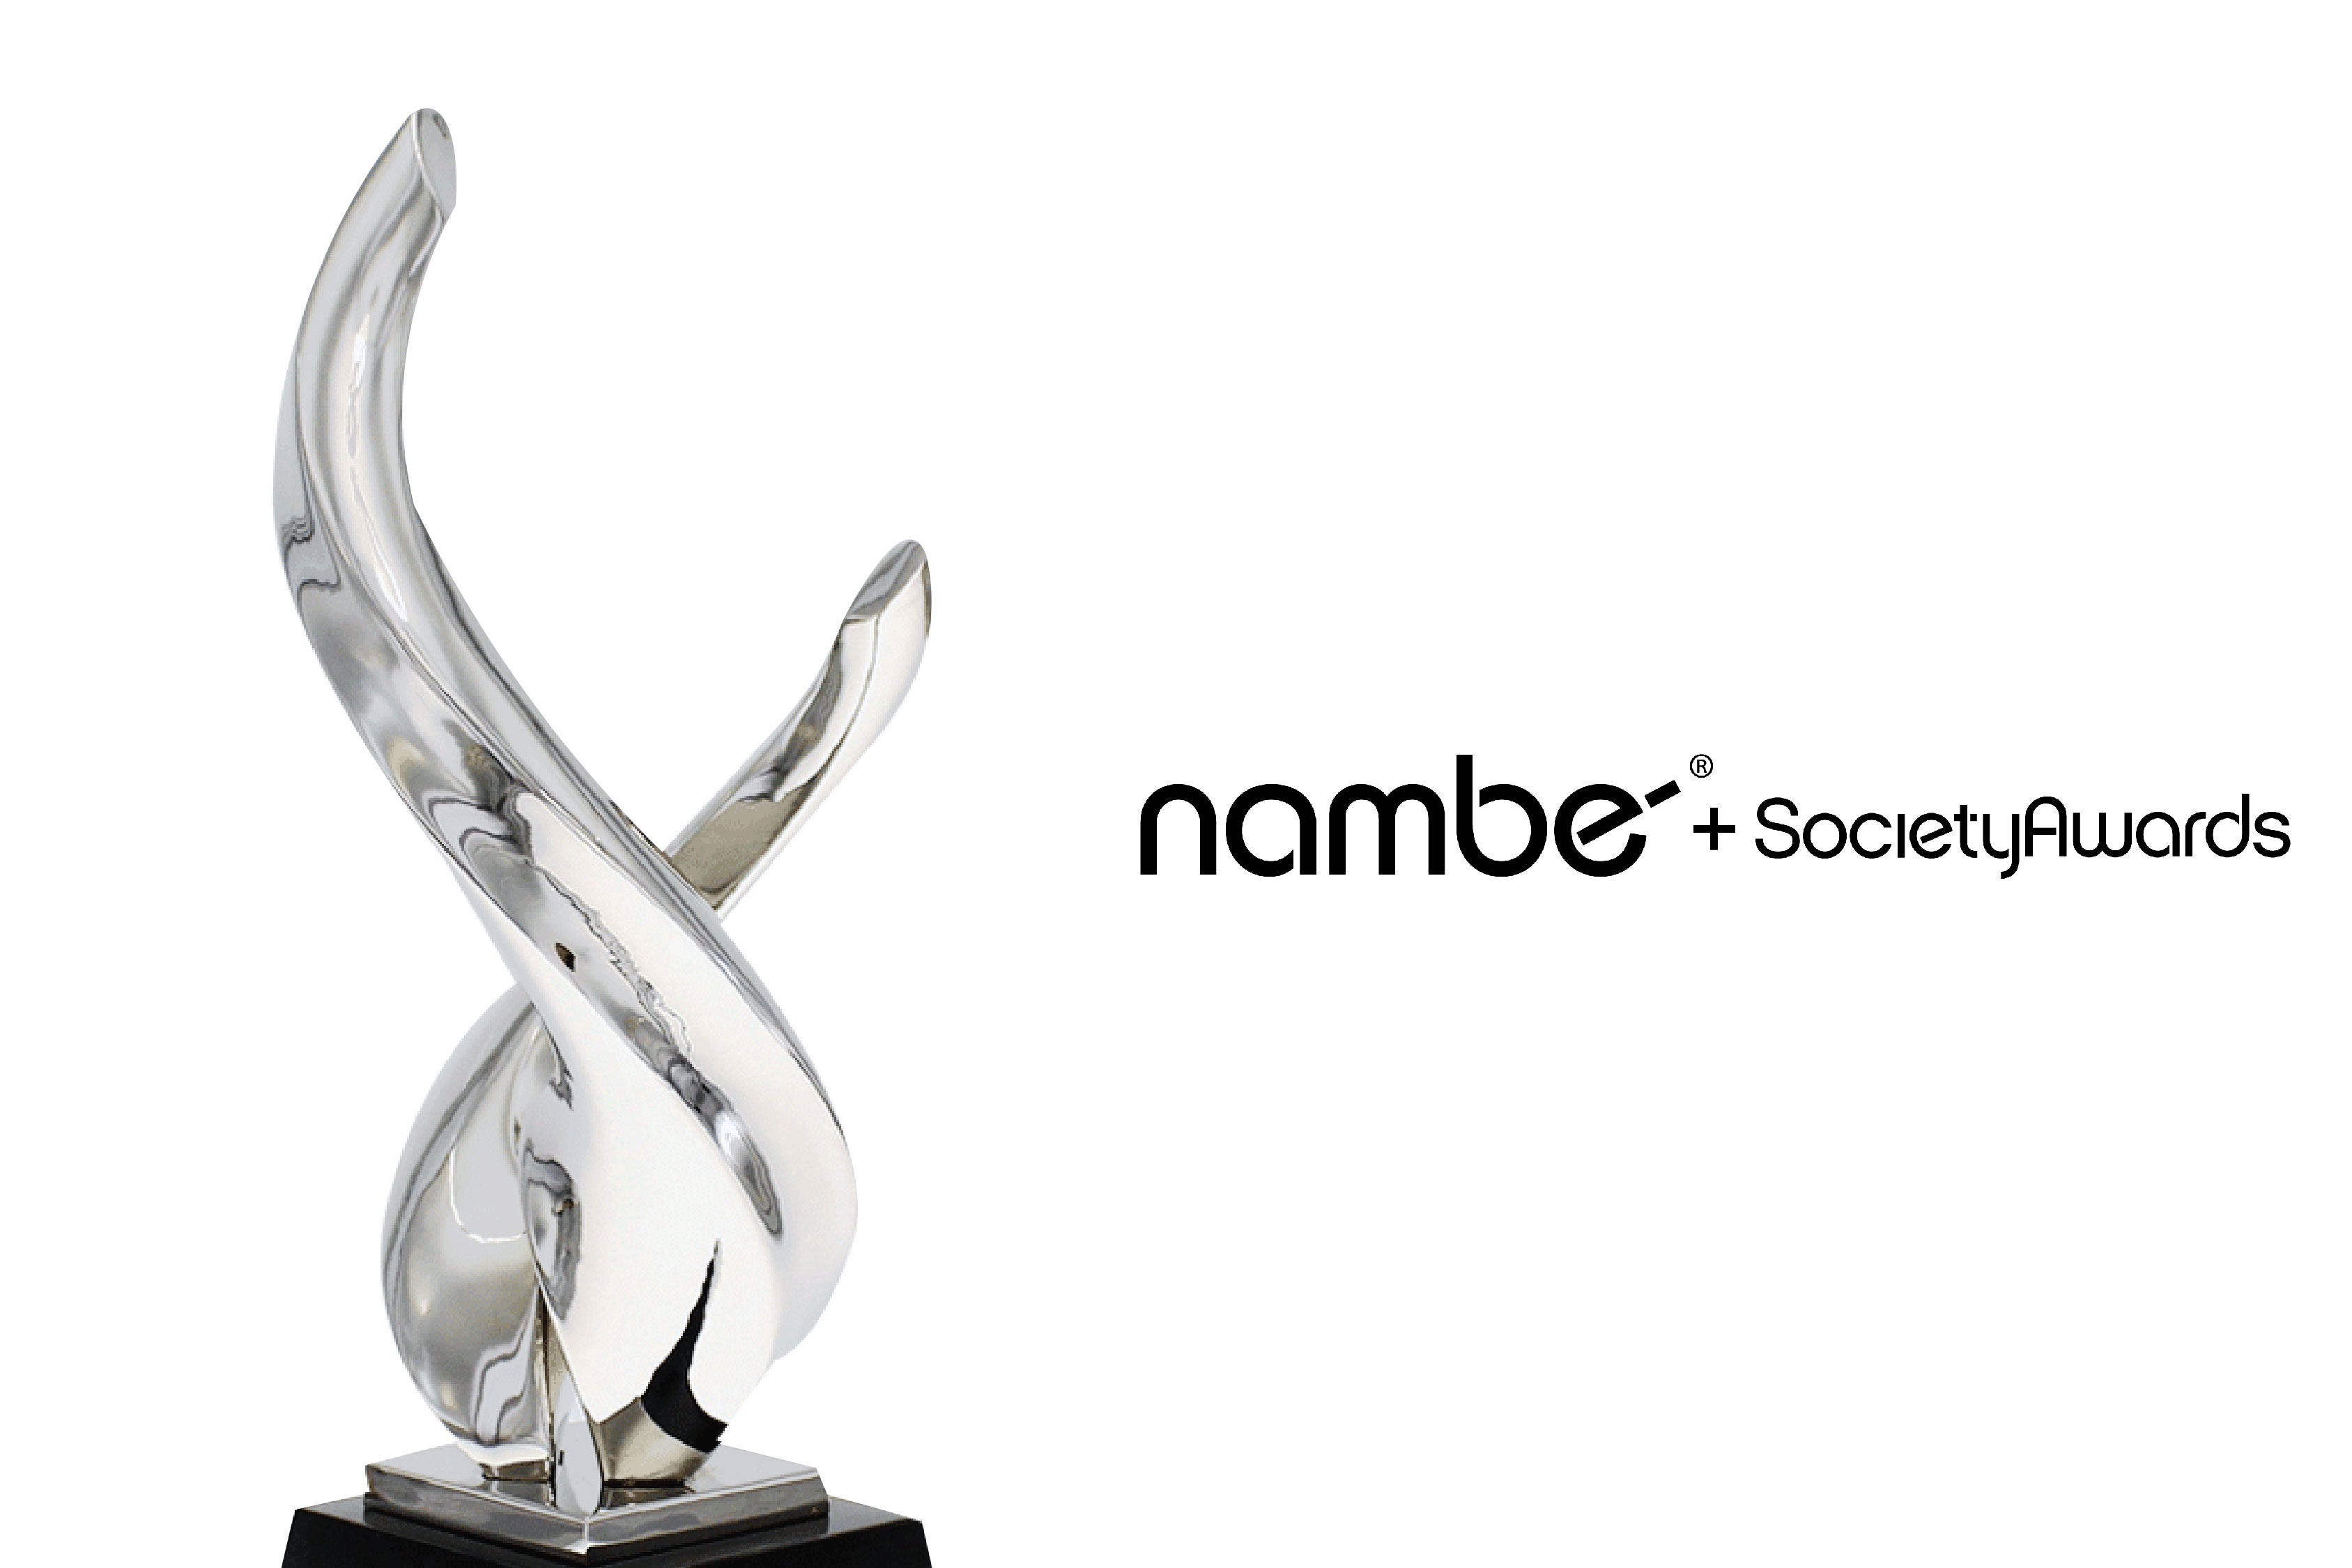 Close up view of the Namb Lark trophy and collaborative logo